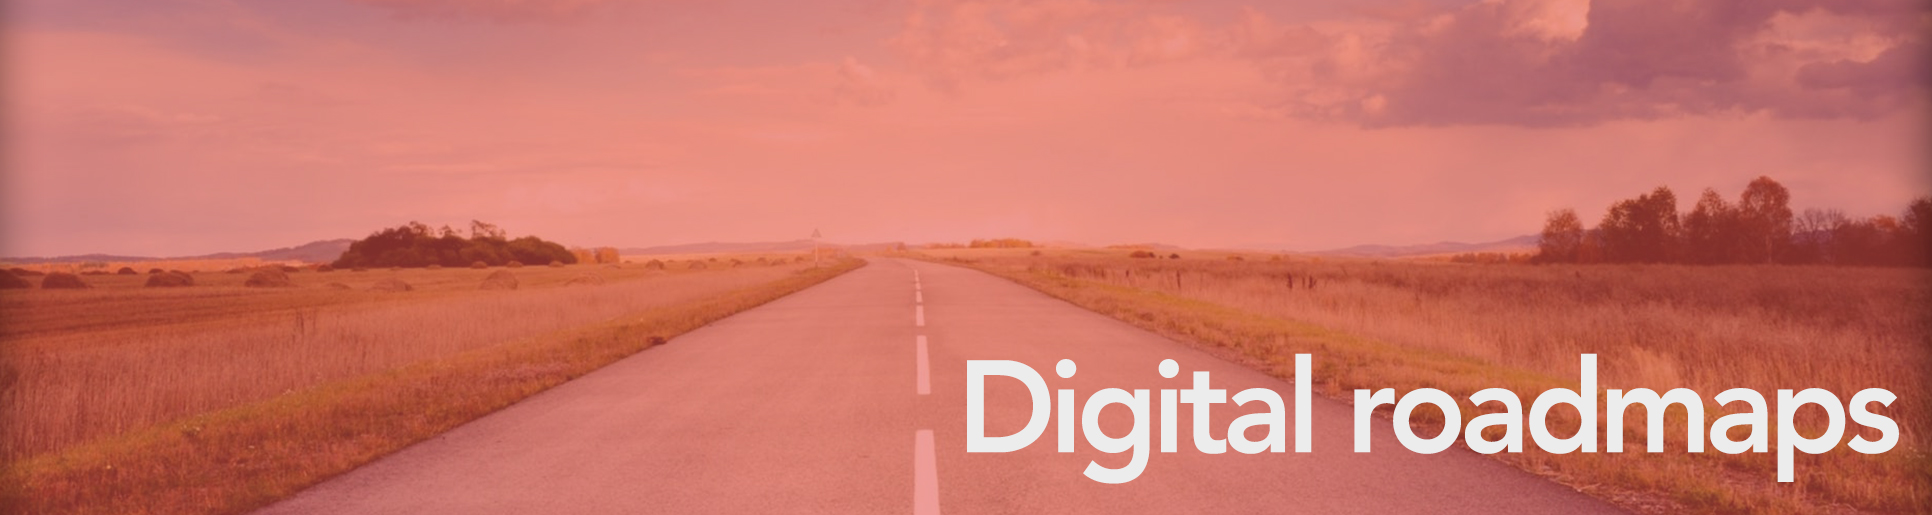 How to create a digital roadmap, and why you need one | Inviqa